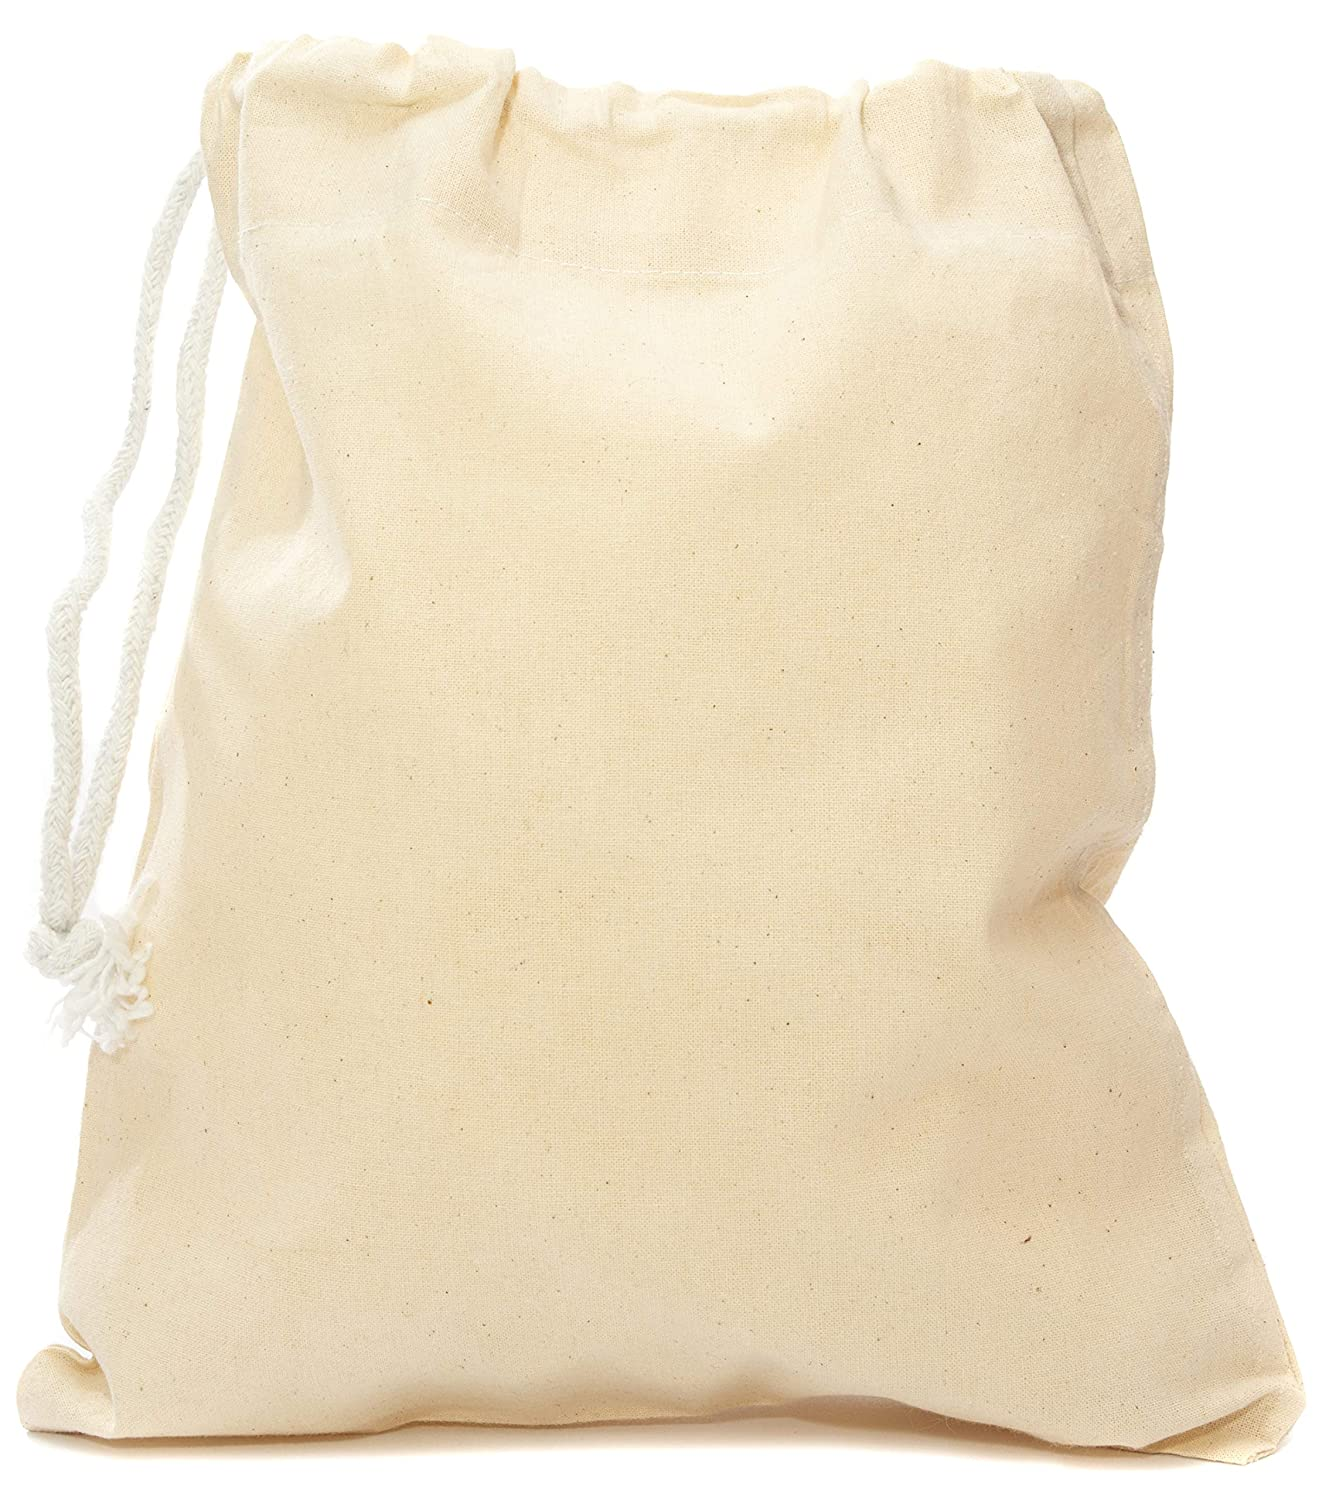 PACK of 5 - FAIRTRADE Natural COTTON Drawstring Bags. Size: 25 x 30cm (S)